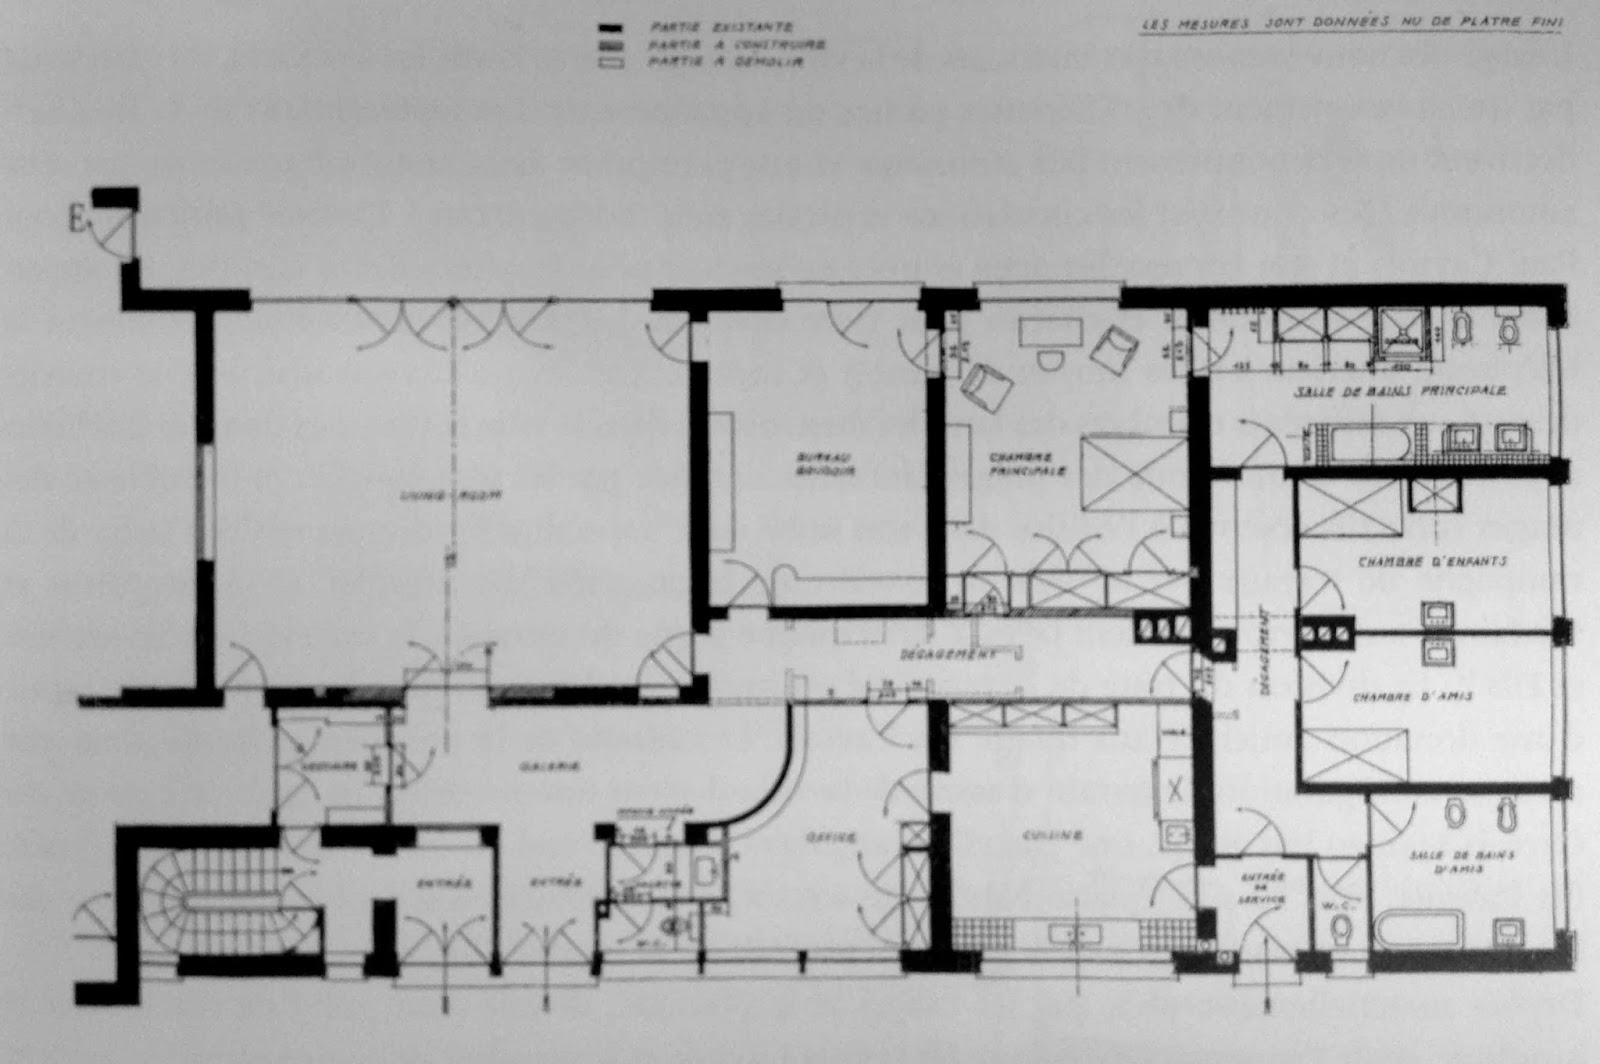 Plan de maison moderne avec etage for Plan maison contemporaine etage